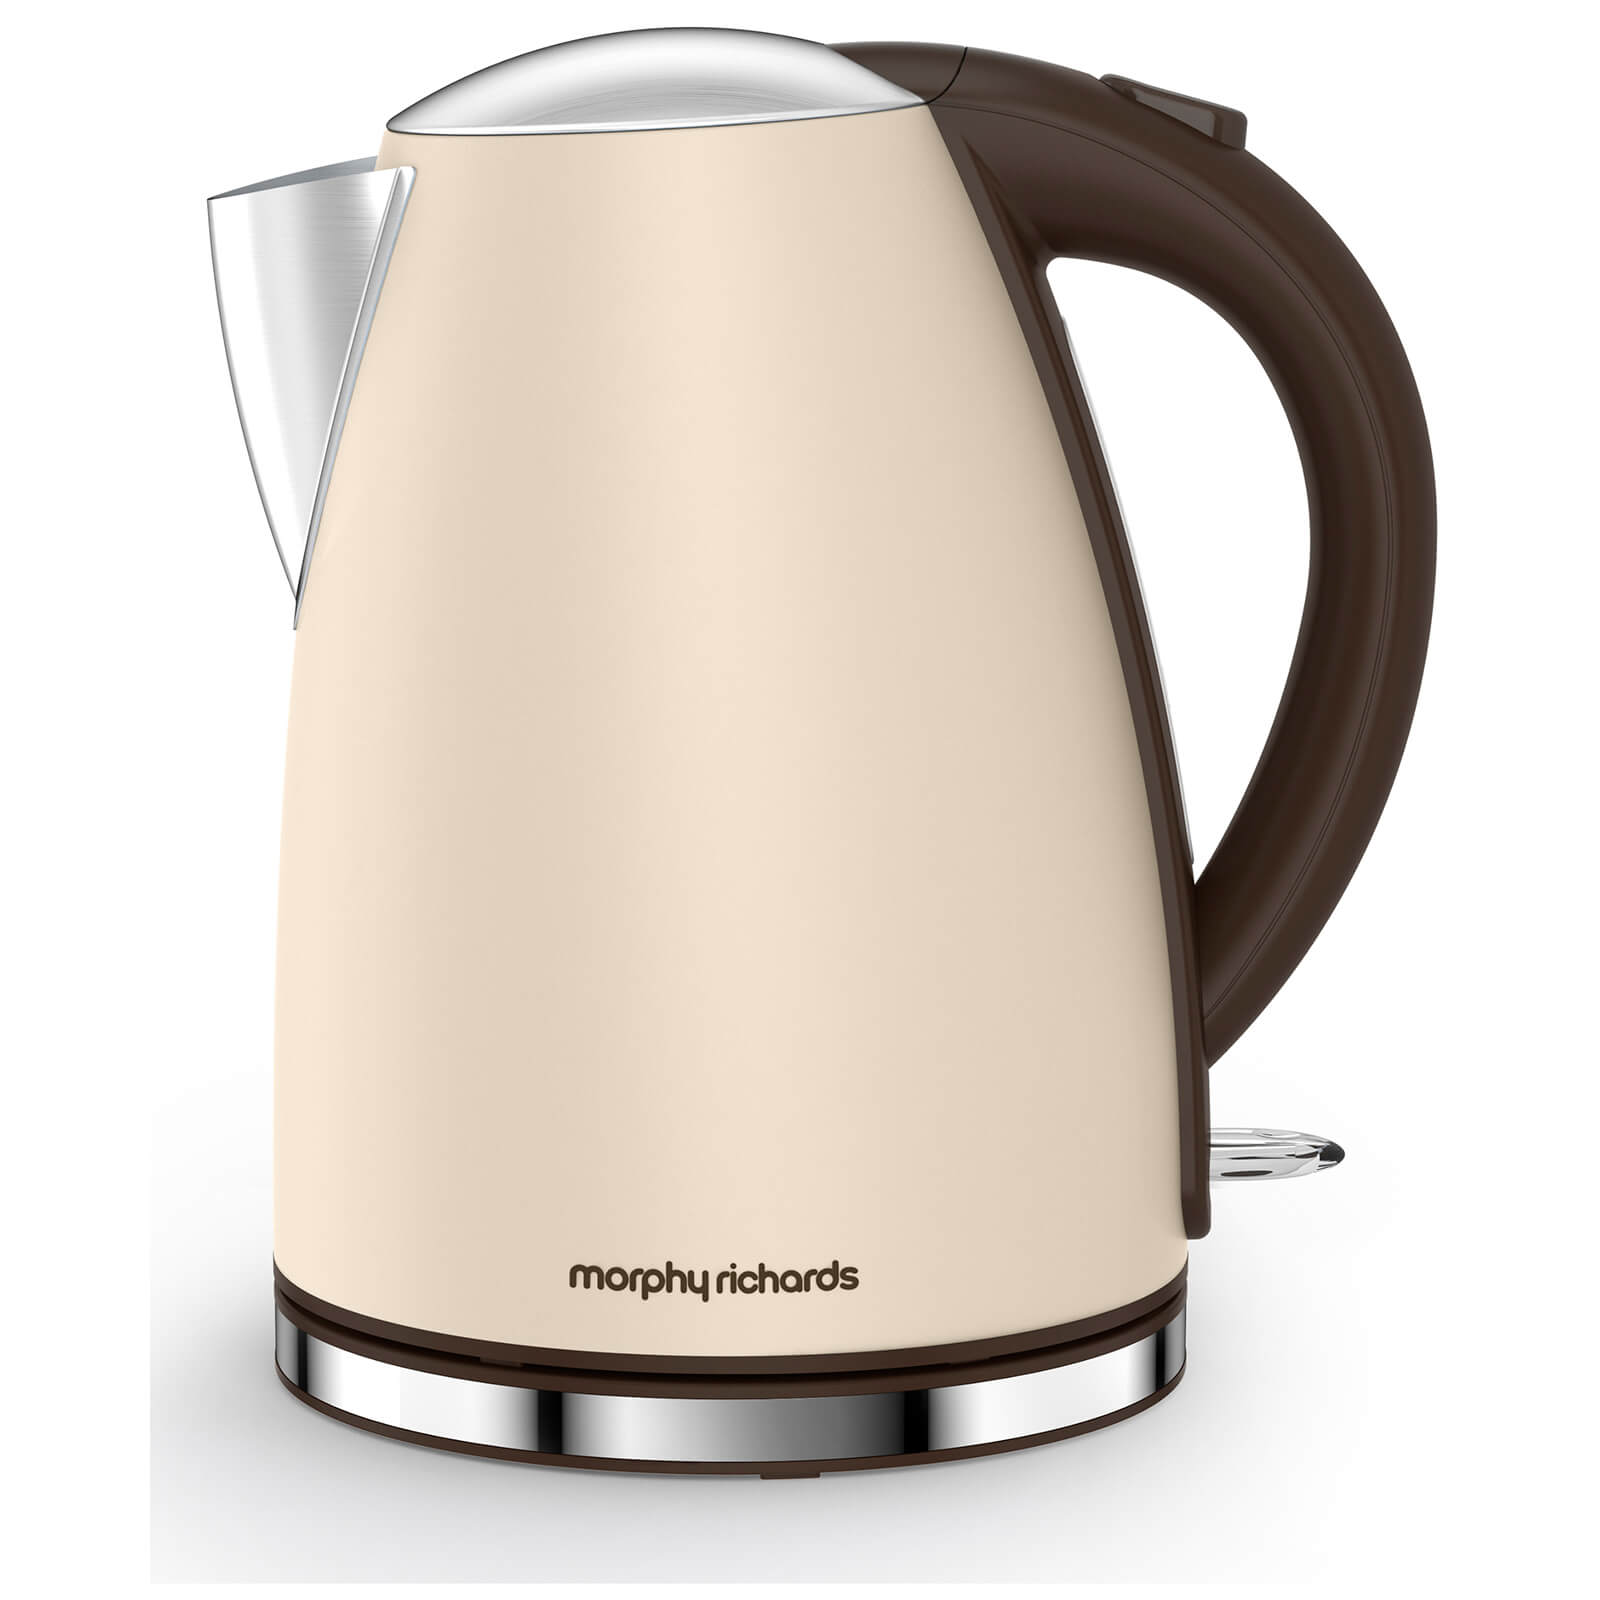 Morphy Richards 103003 1.7L Accents Jug Kettle - Sand